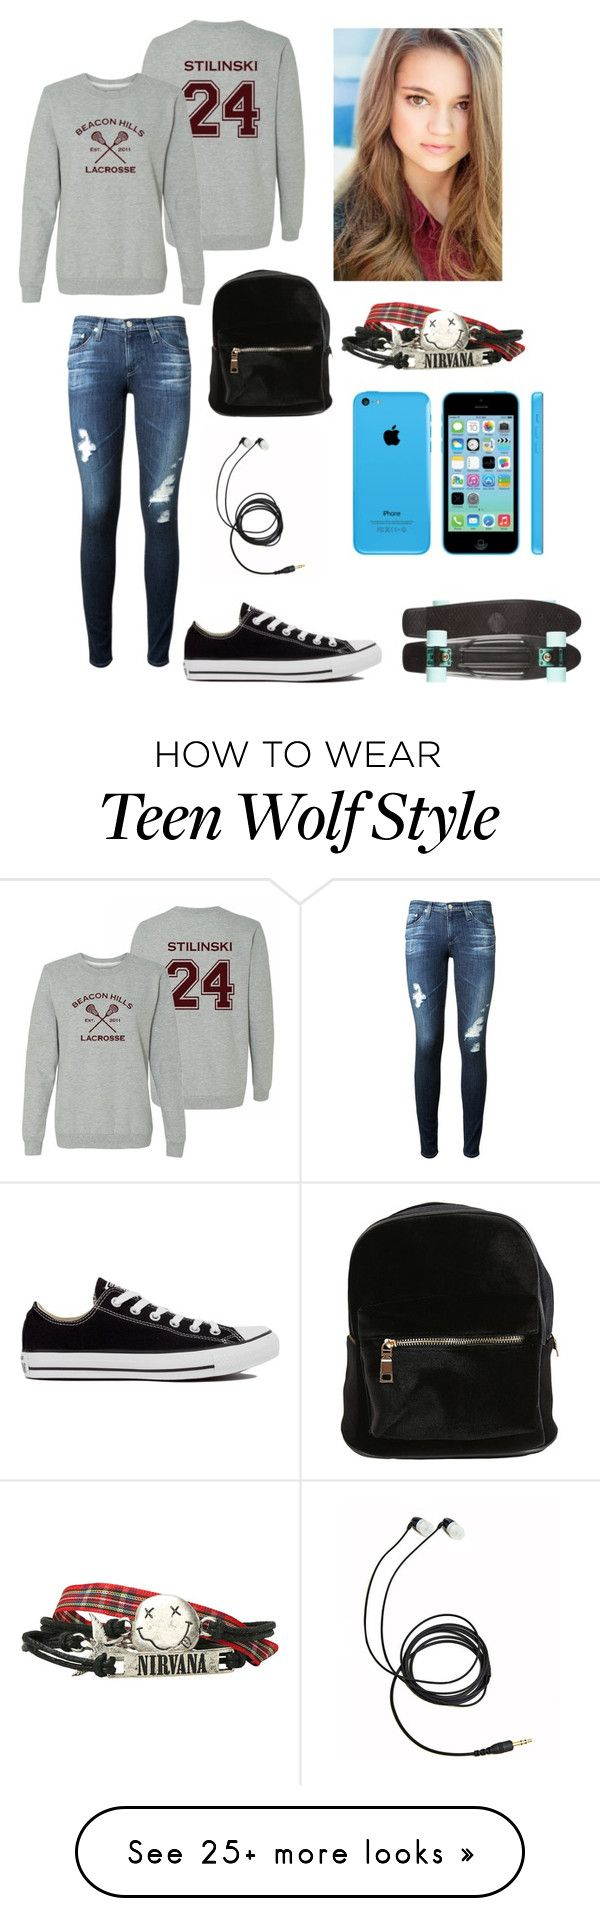 """New Story?"" by learning-to-love on Polyvore featuring moda, AG Adriano Goldschmied y Converse                                                                                                                                                                                 Más"